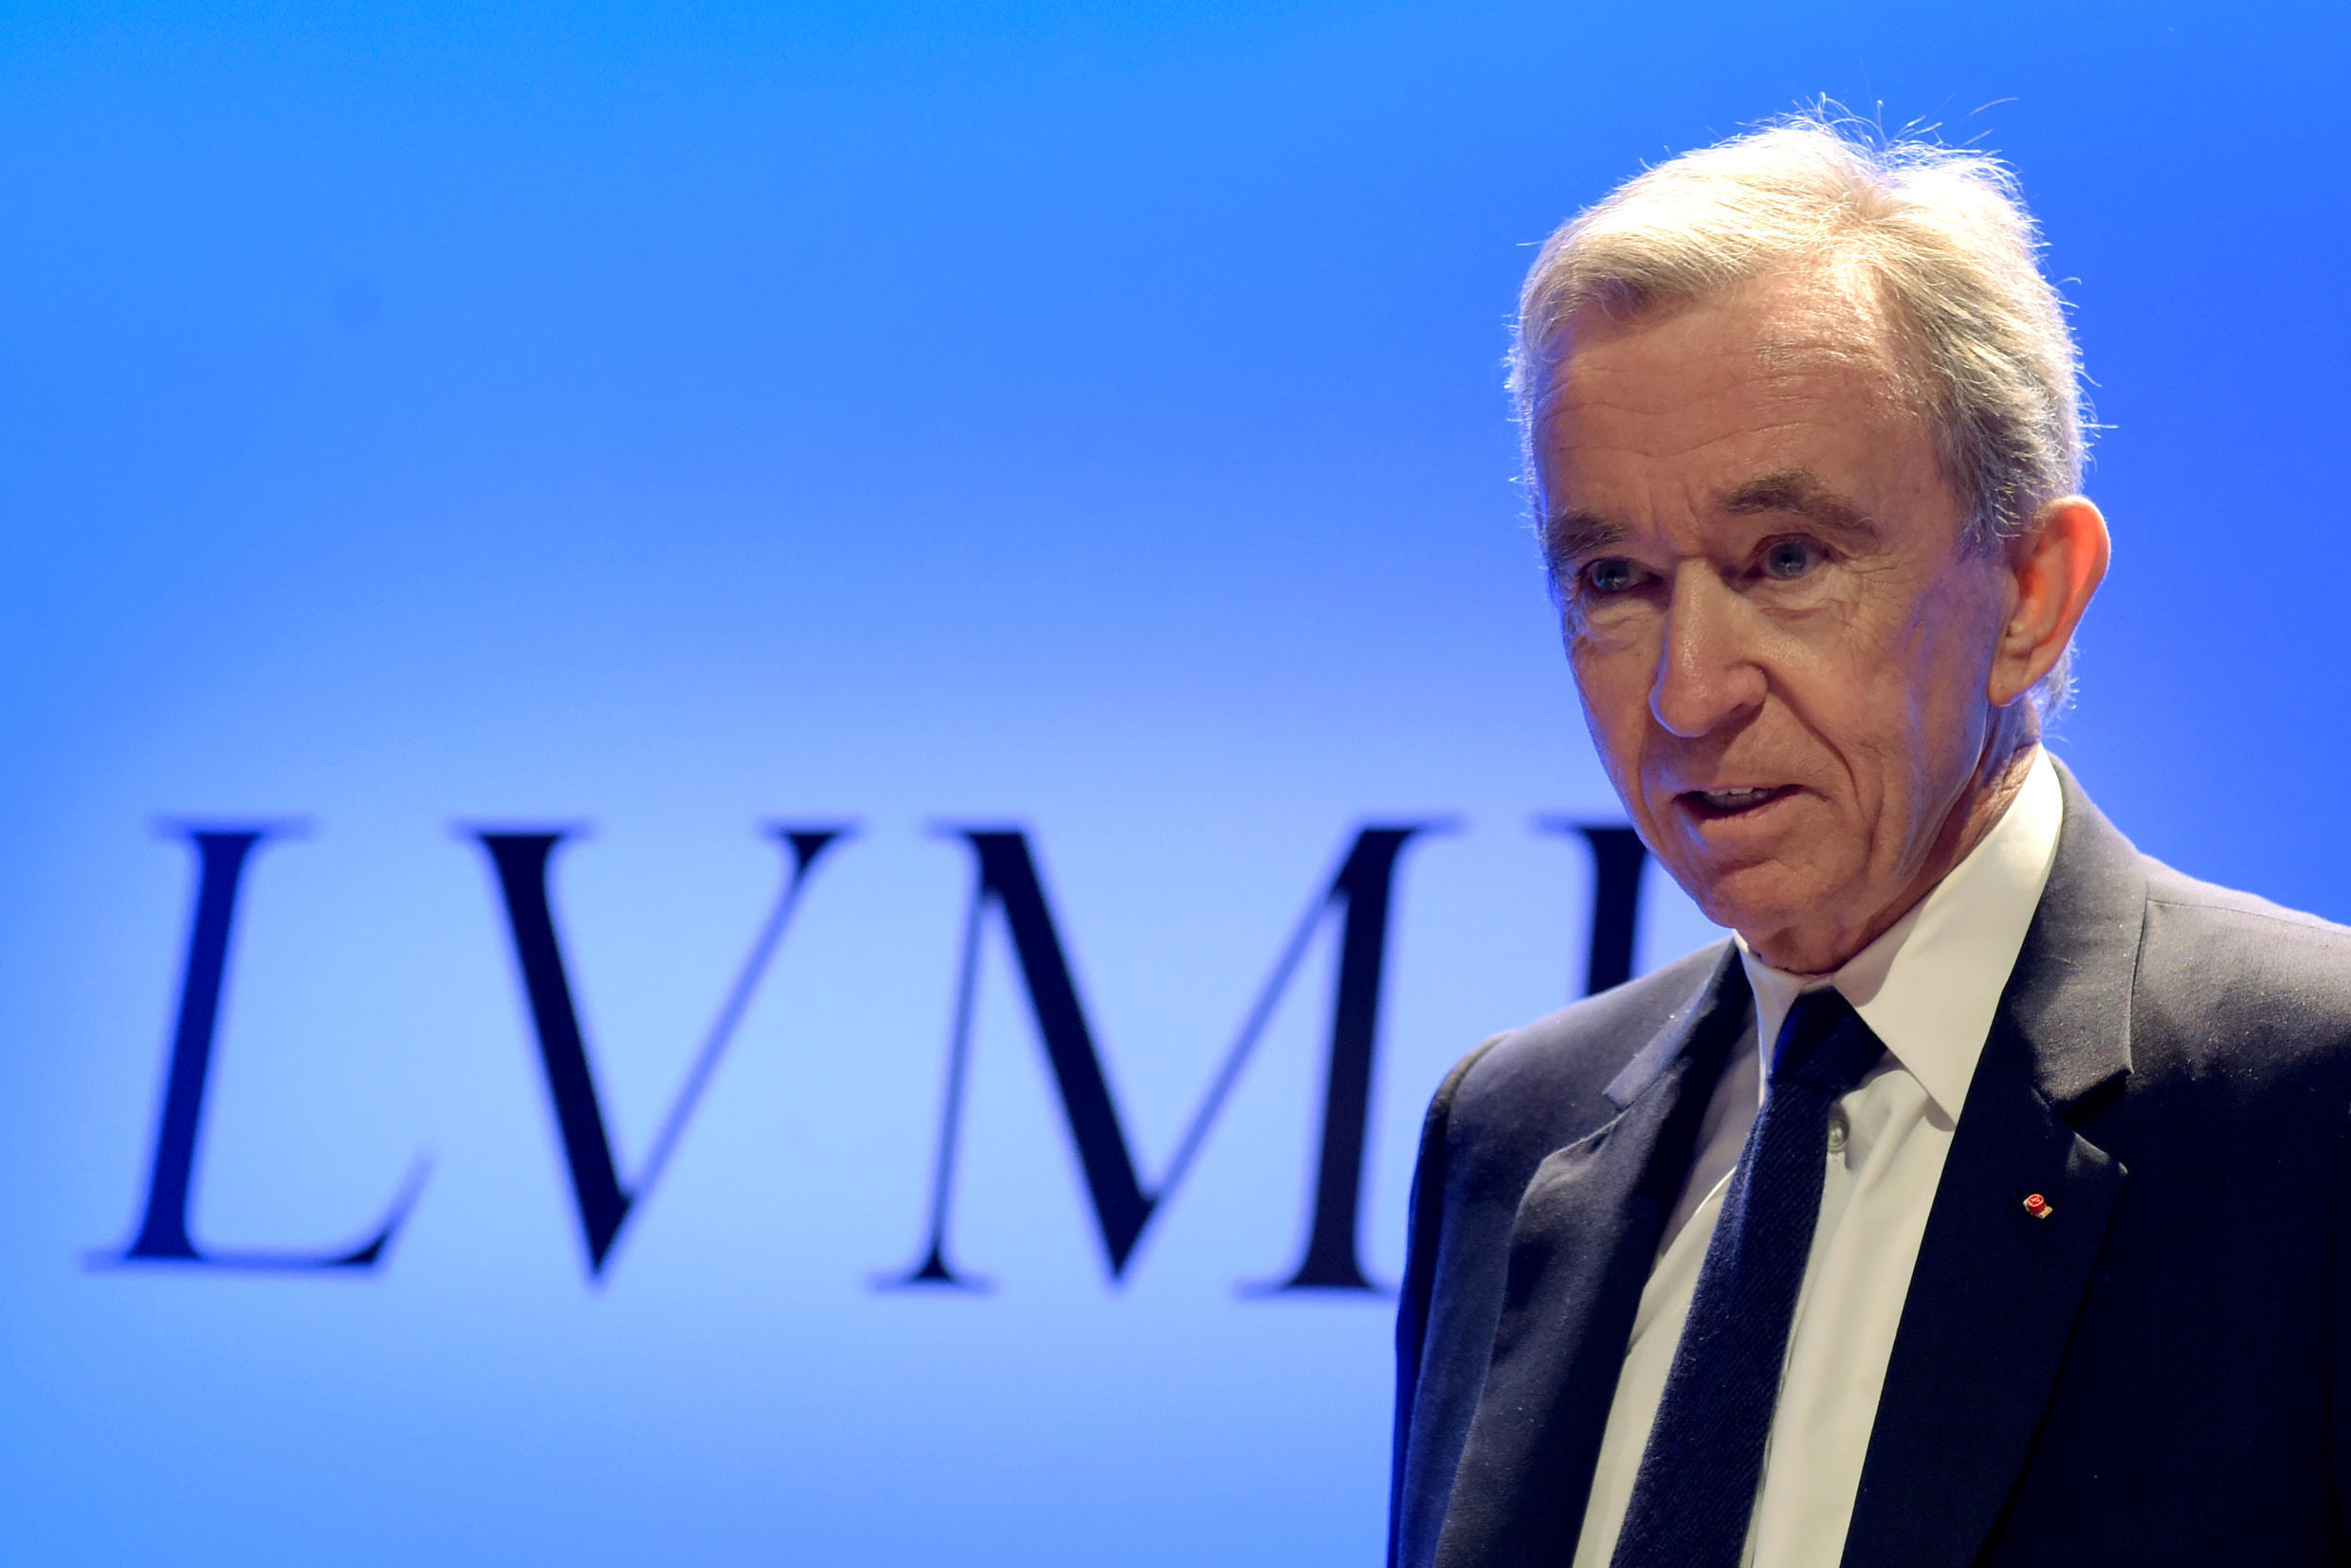 LVMH Chairman and Chief Executive Officer Bernard Arnault presents the group's annual results at the LVMH headquarters in Paris, January 29, 2019.